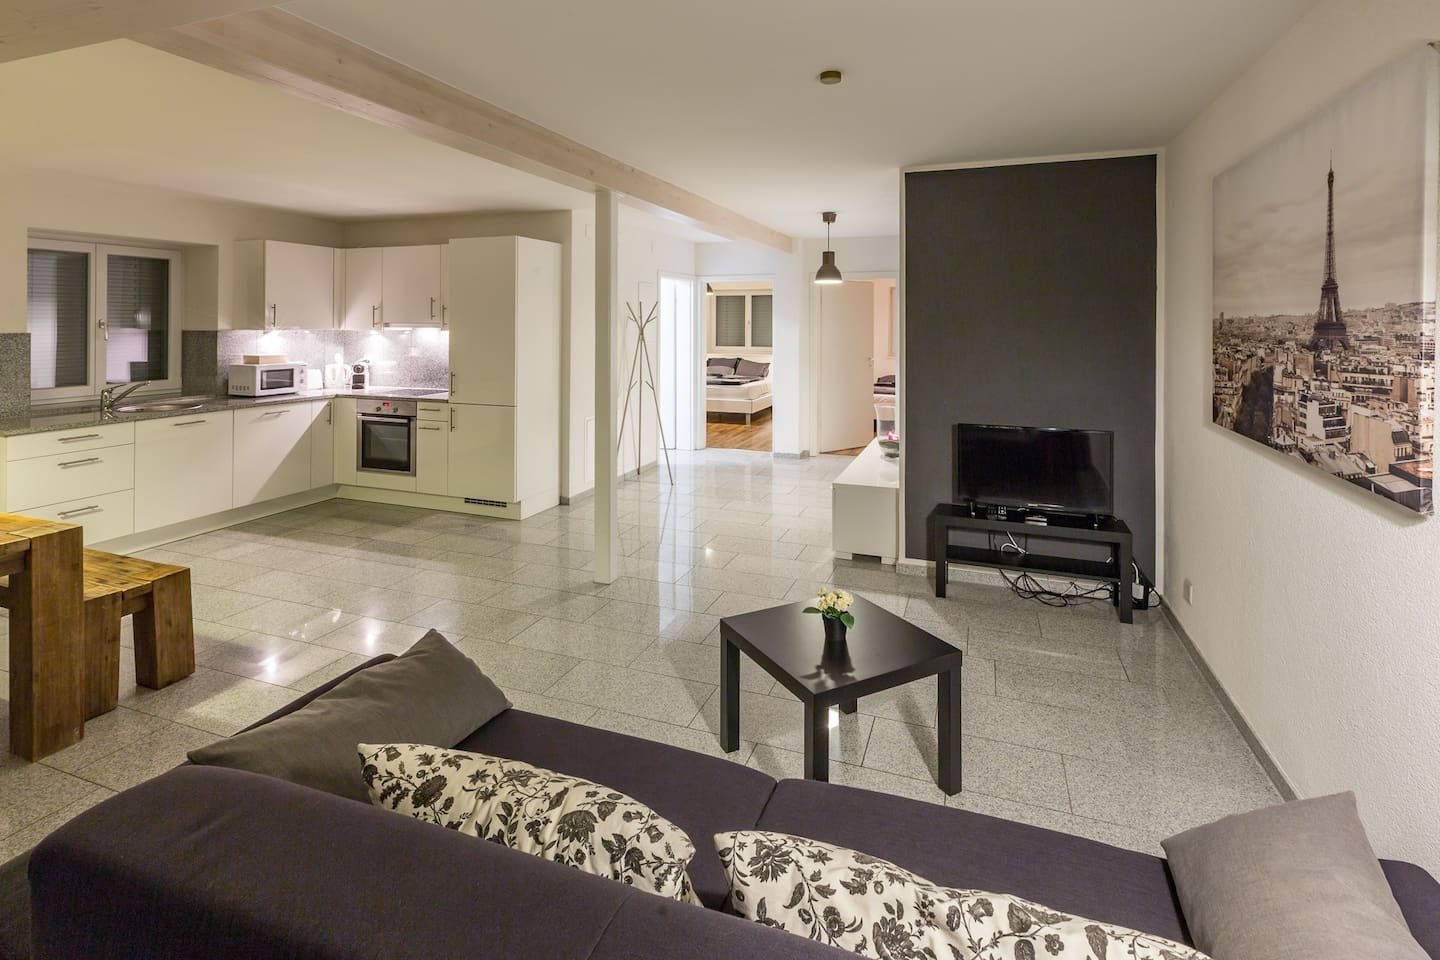 Modern 2 Bedroom Serviced Apartment for up to 5 Persons | Airstay® Basel, Switzerland